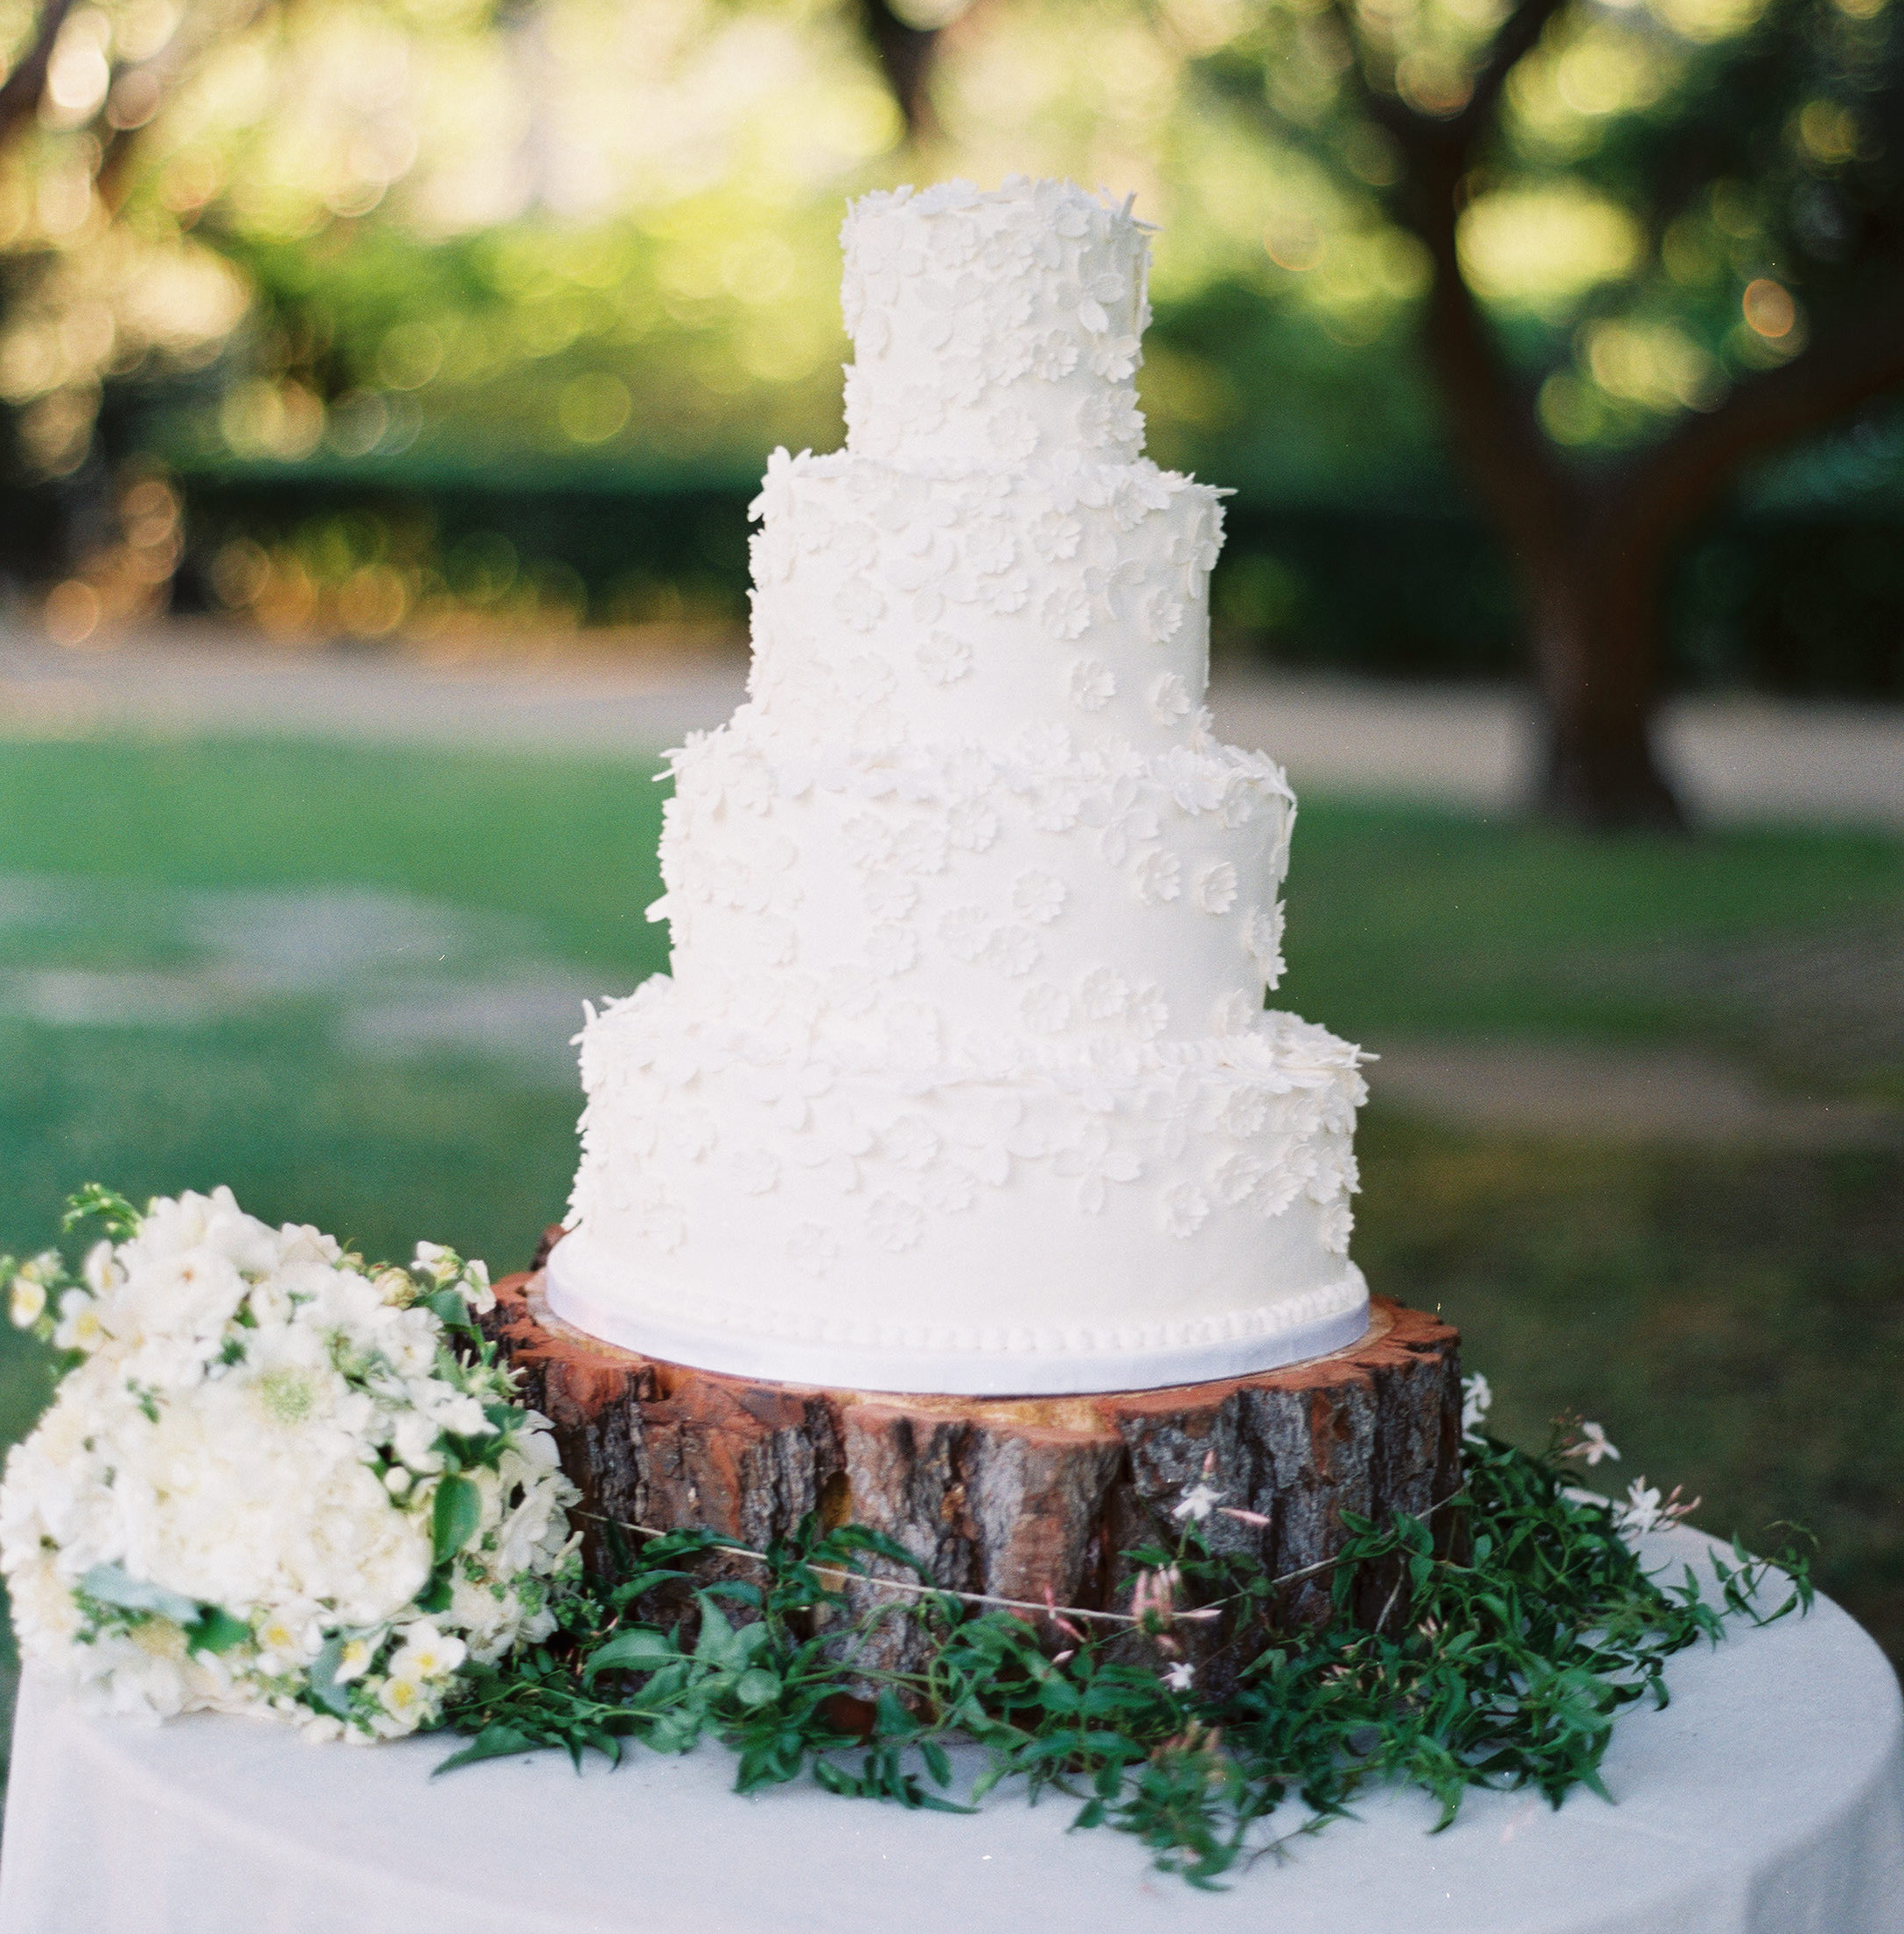 Wedding Cakes: White Wedding Cake Ideas - Inside Weddings